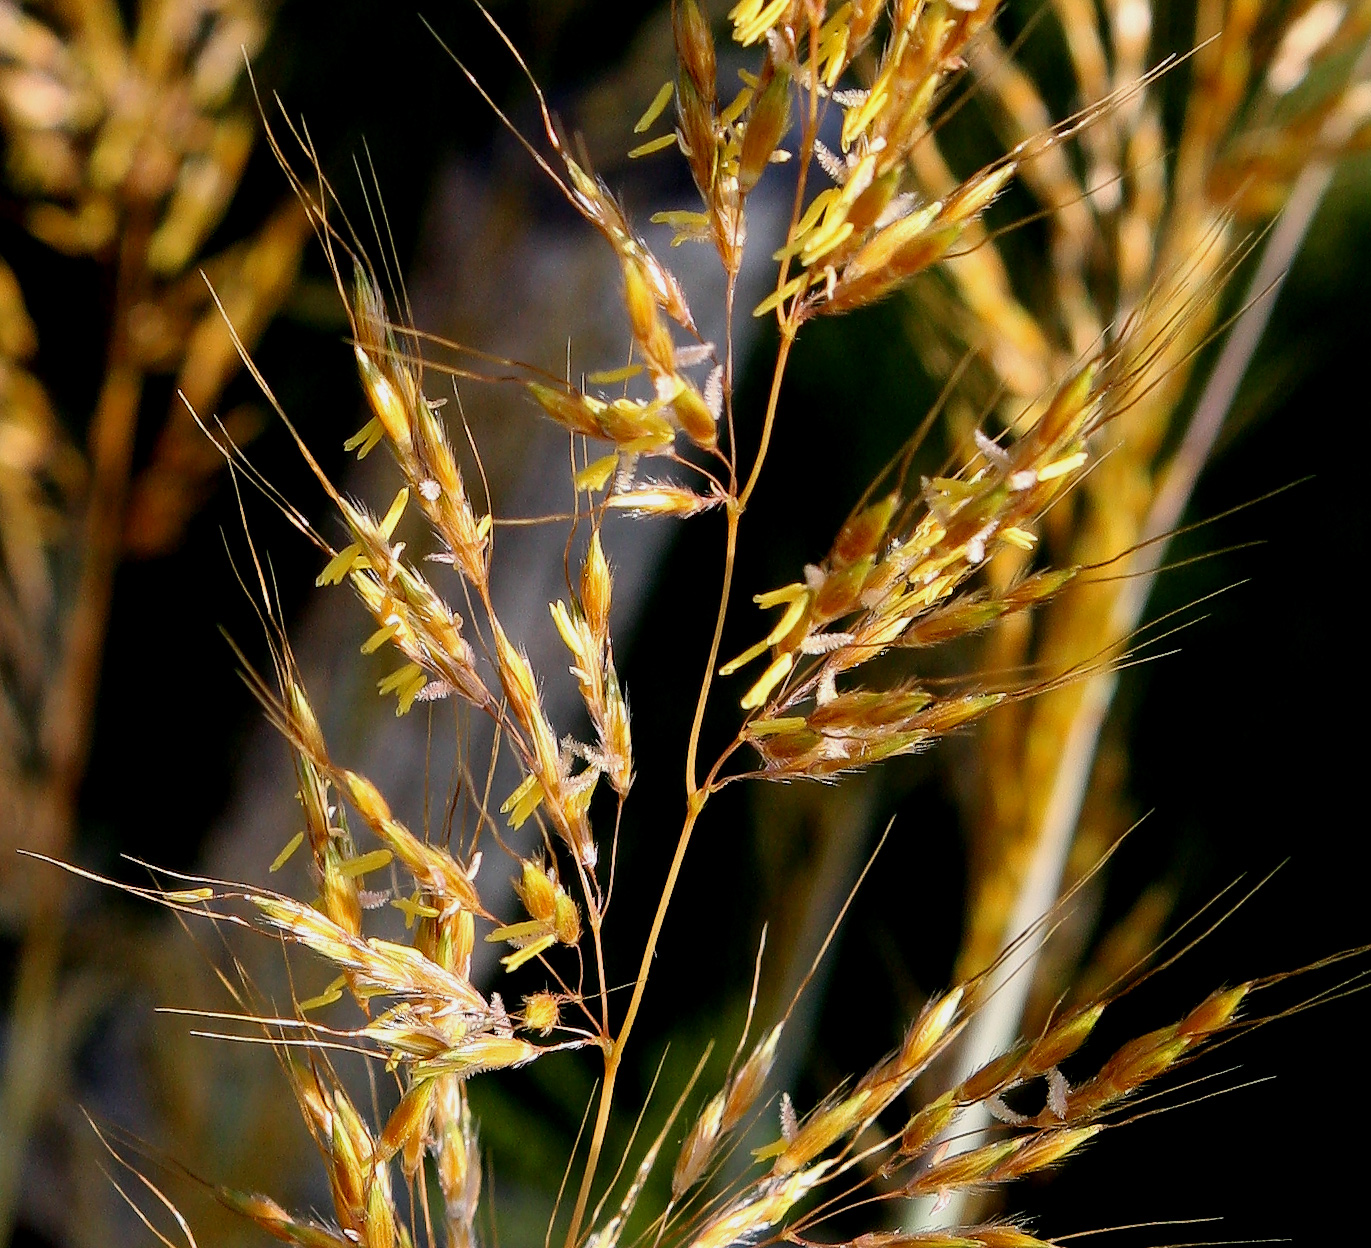 Closeup of grass stalks belonging to Gramineae, a family of flowering plants that produce the lipid isoarborinol